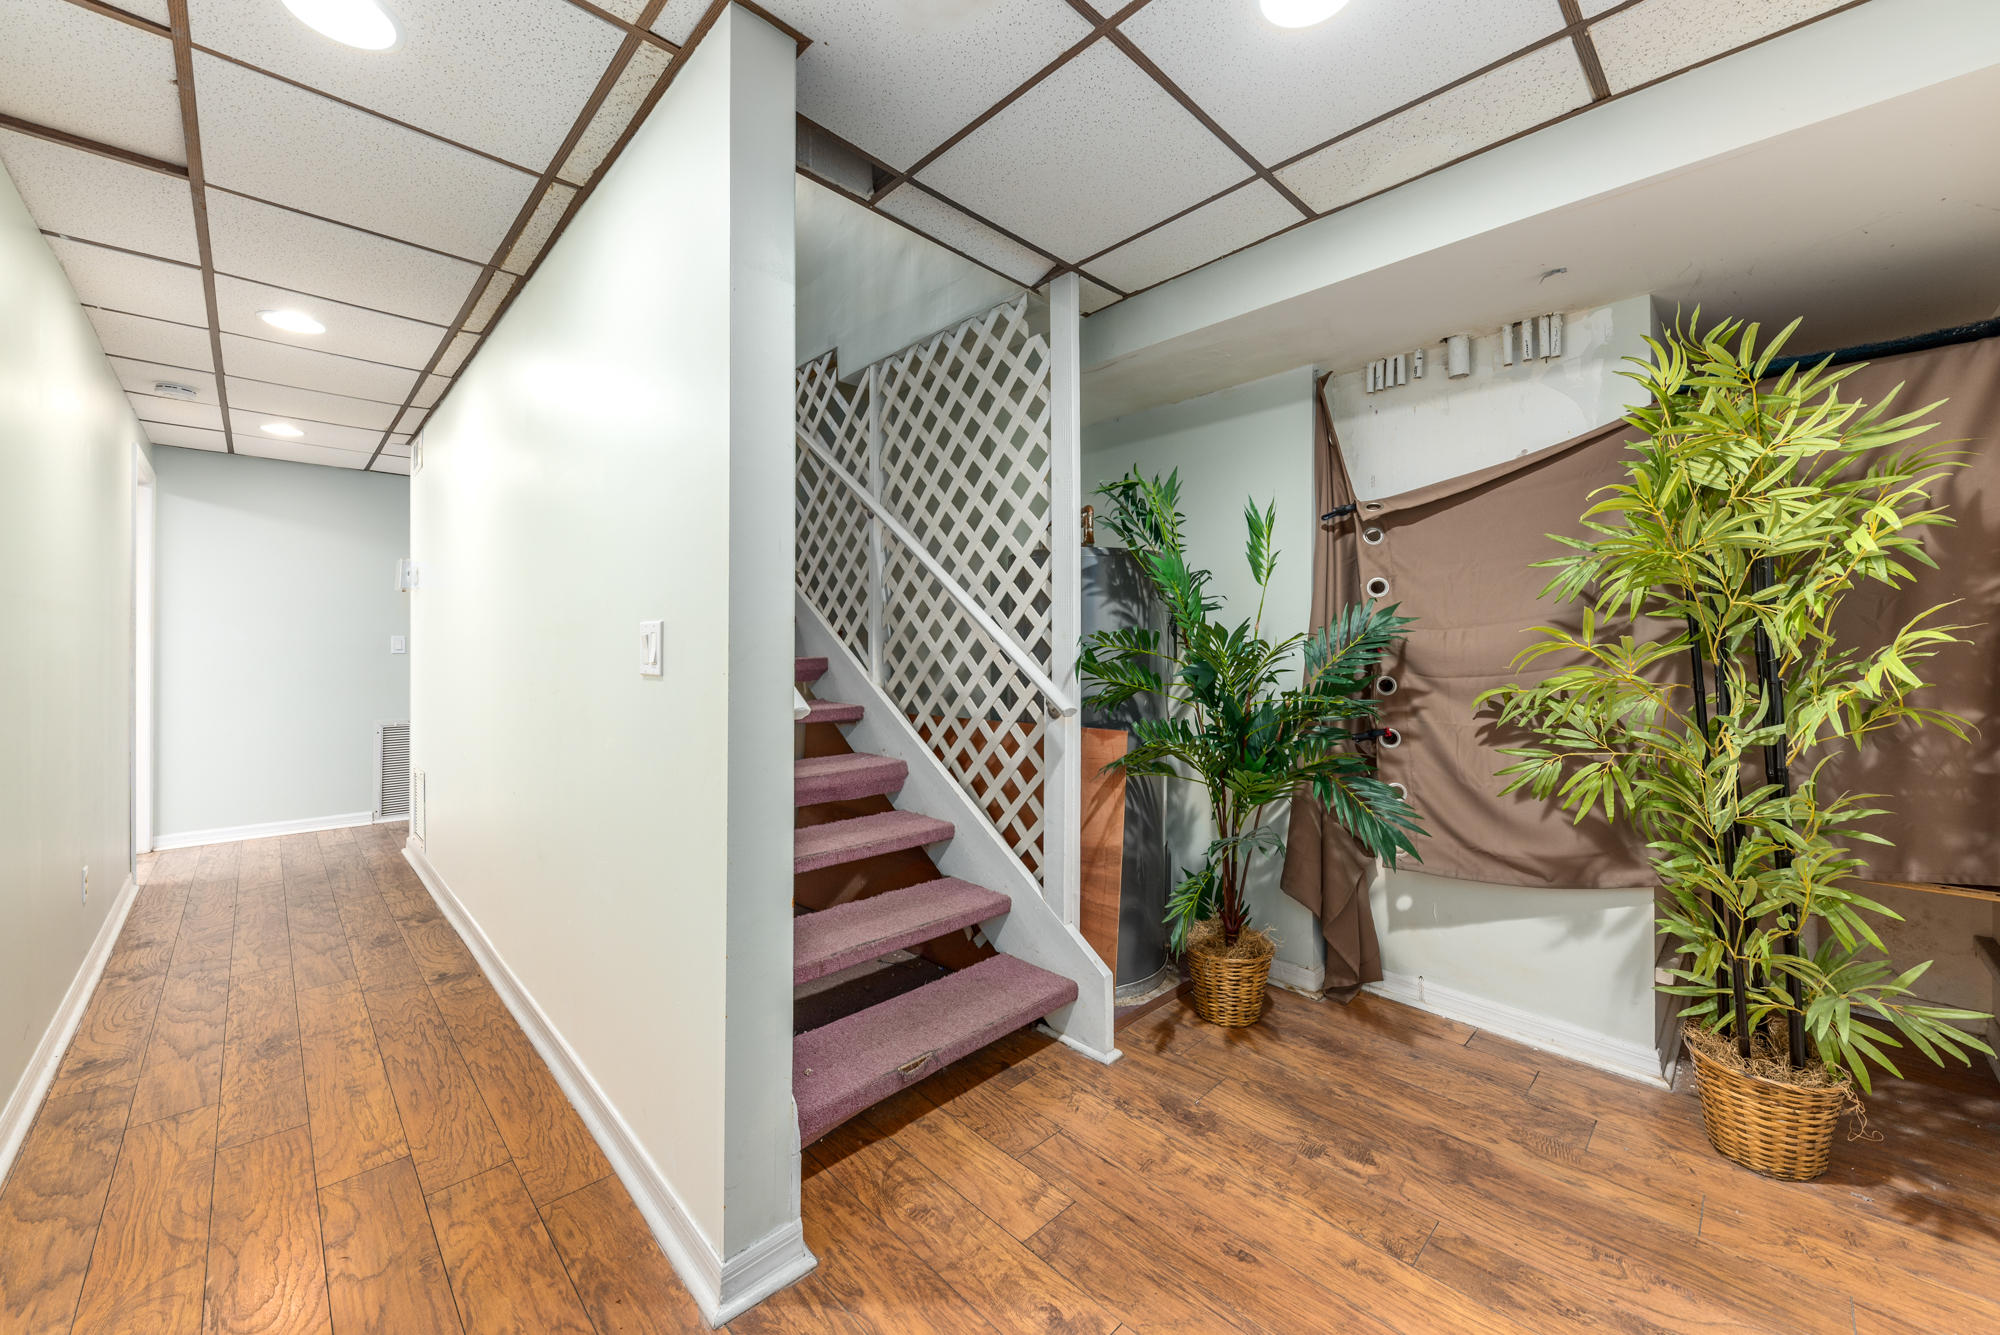 HIGH SCHOOL HOMES FOR SALE